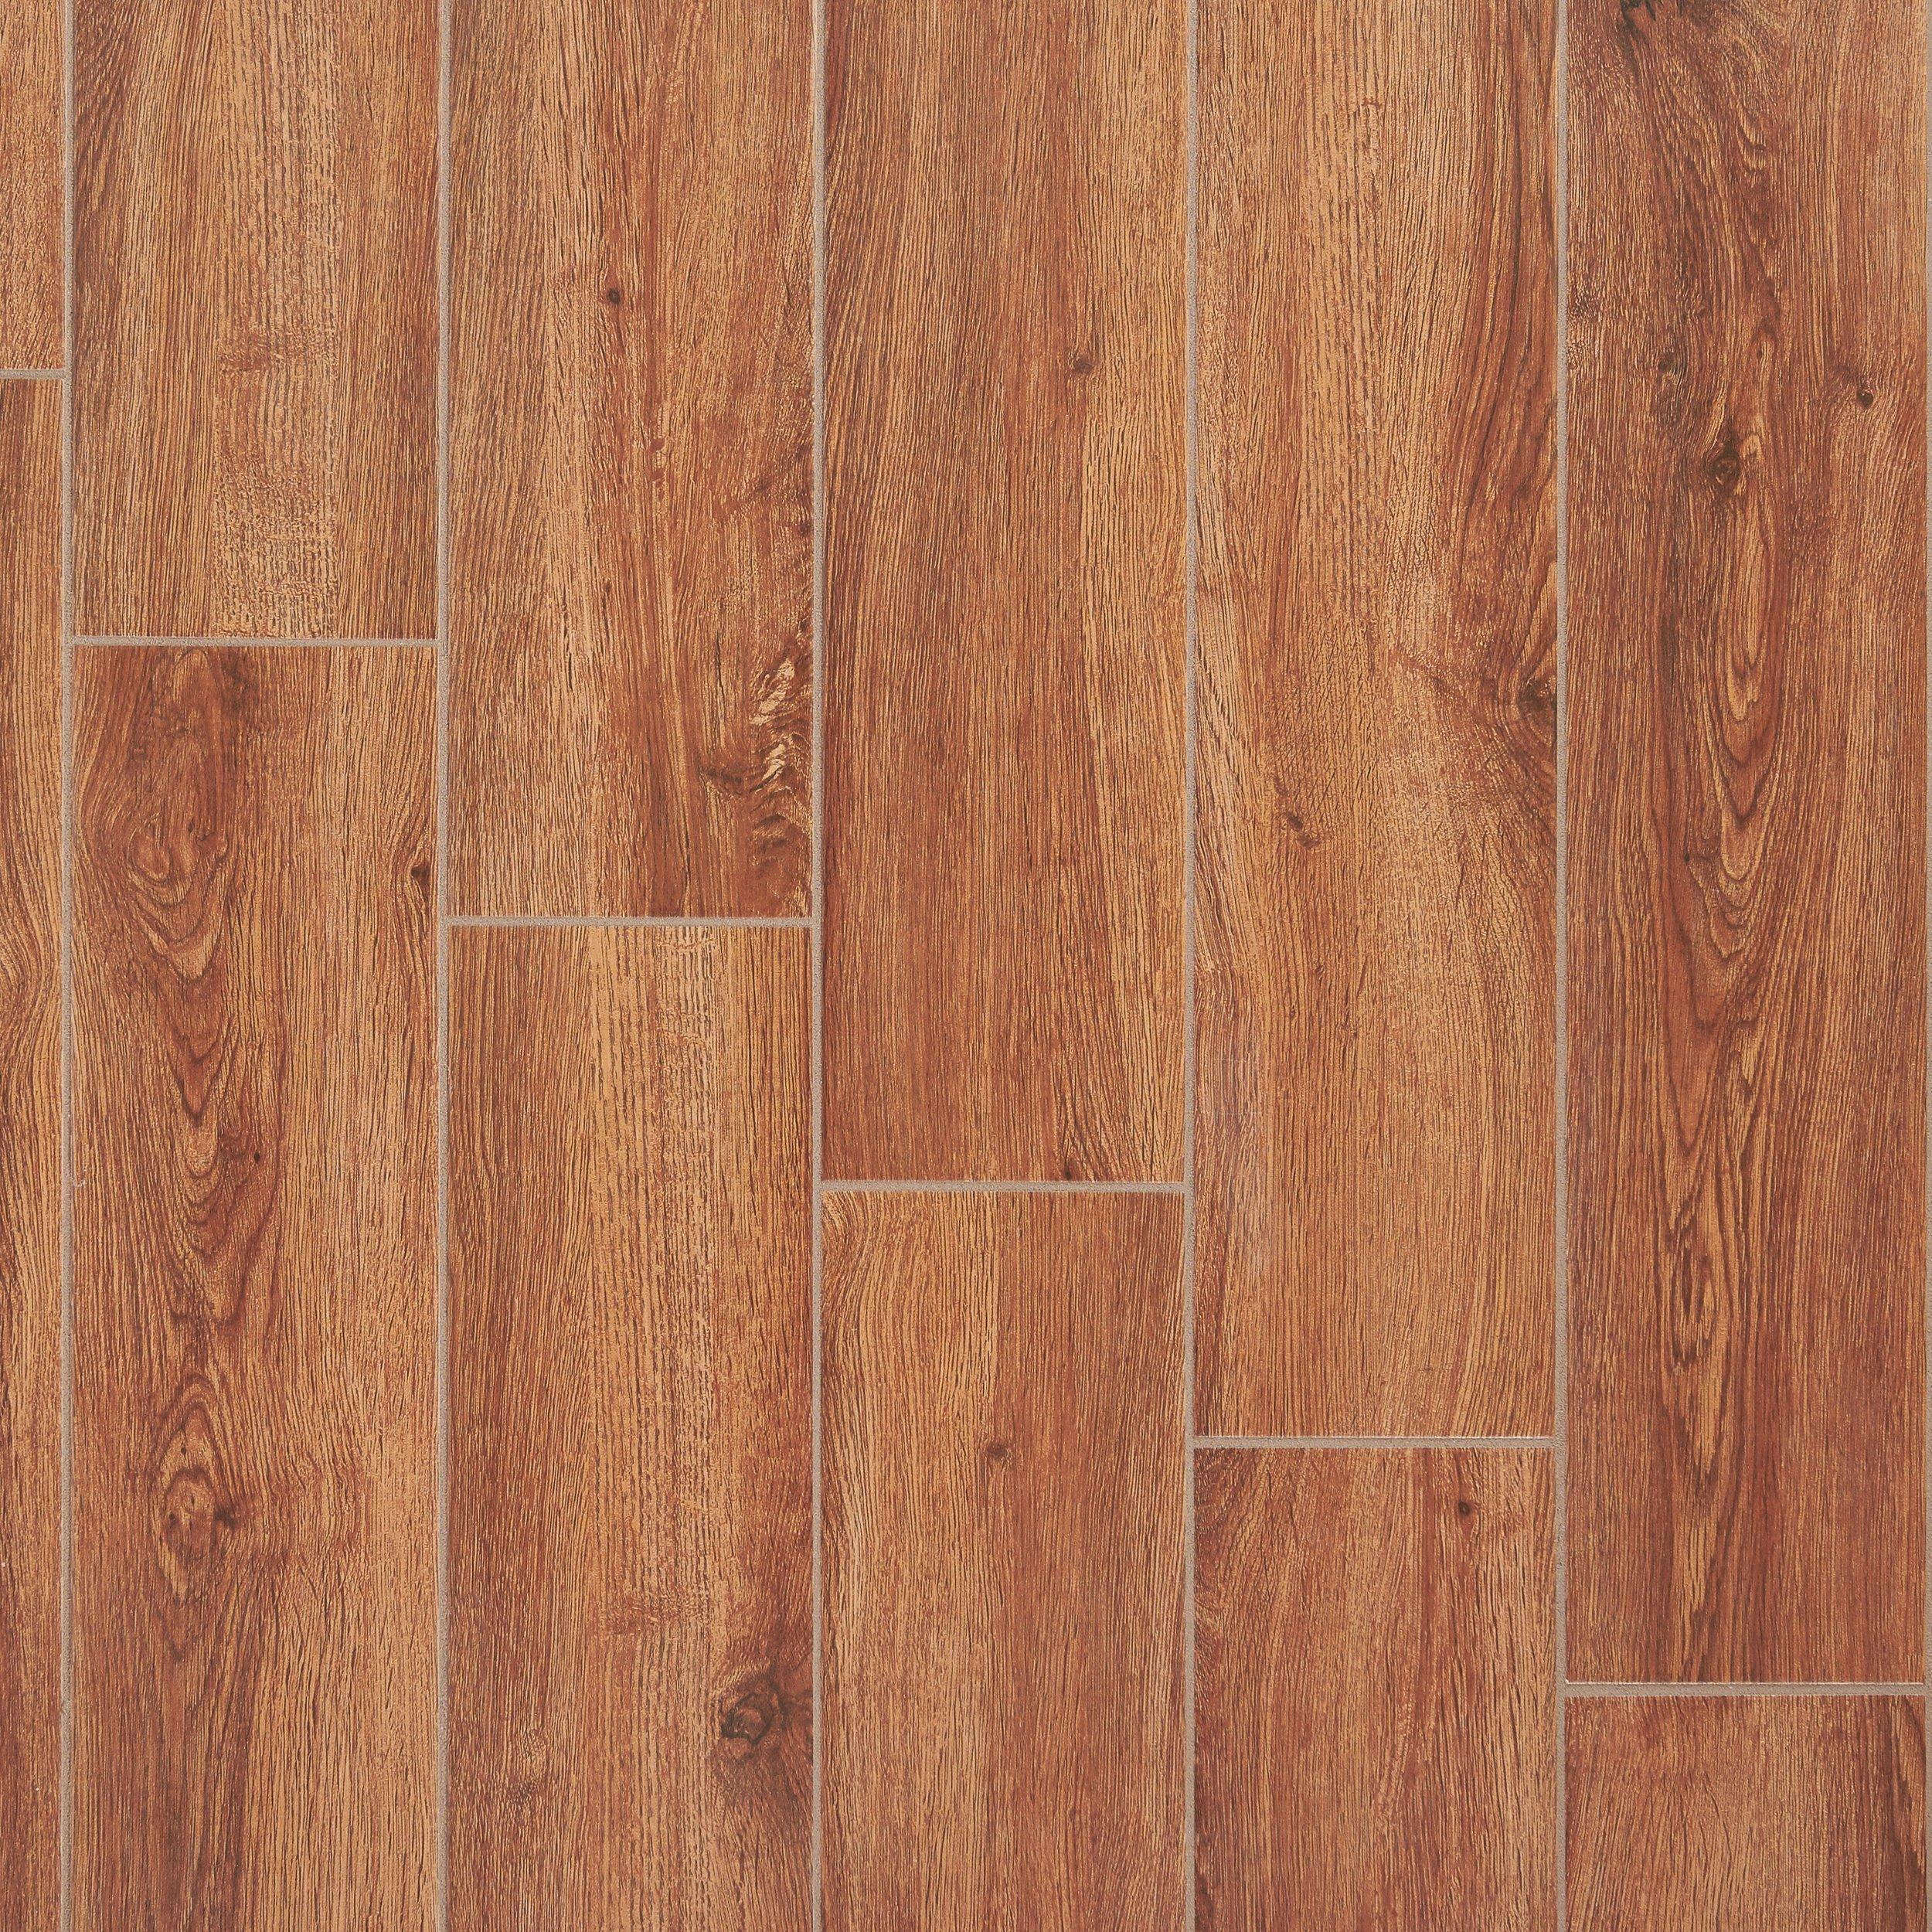 Fulham Red Wood Plank Ceramic Tile 6in x 32in 100131457